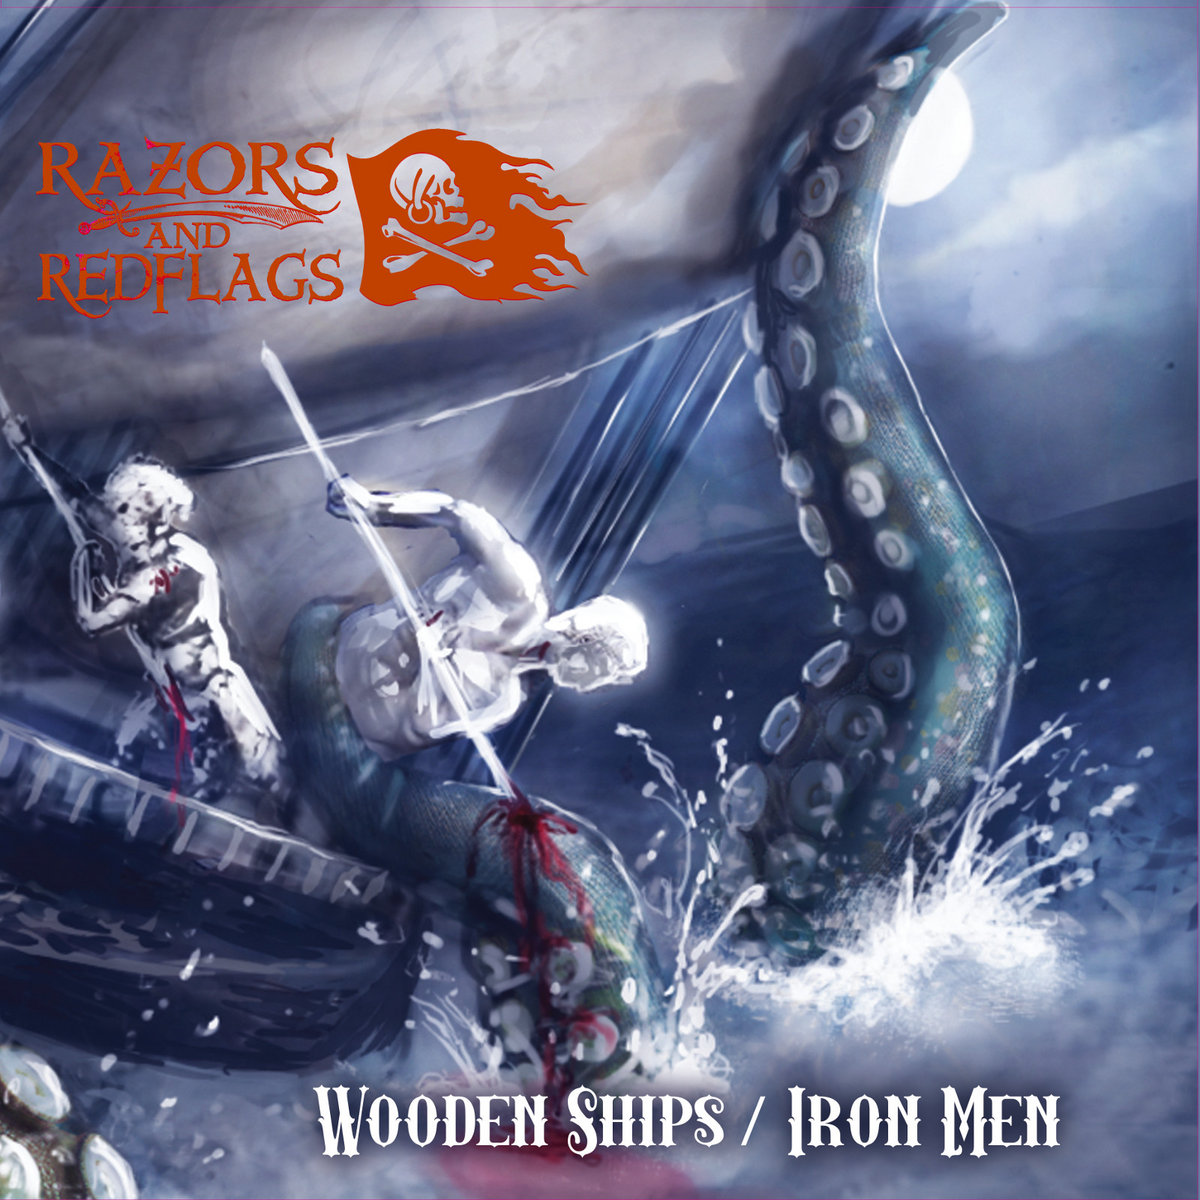 Wooden Ships Iron Men Razors And Red Flags